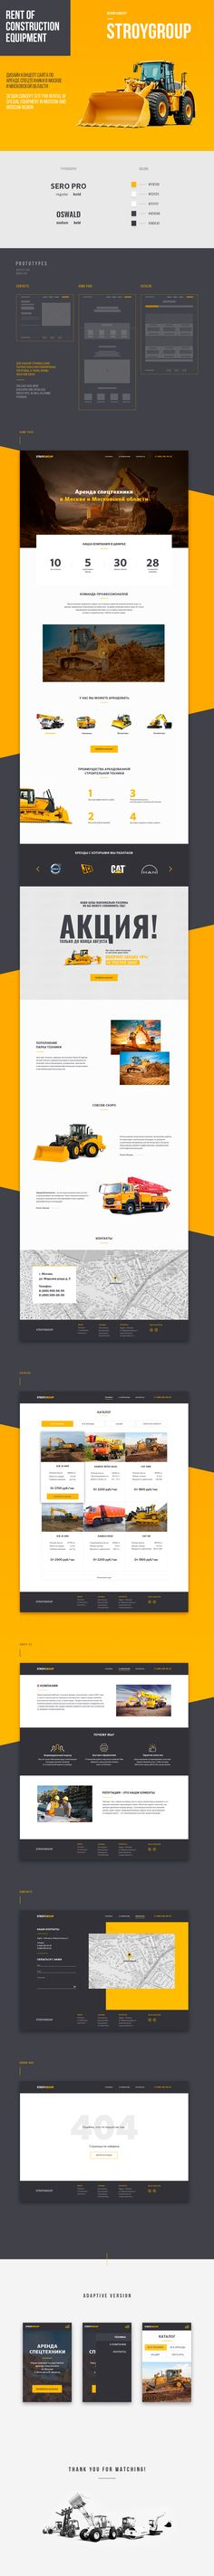 STROYGROUP - rent of special equipment on Behance